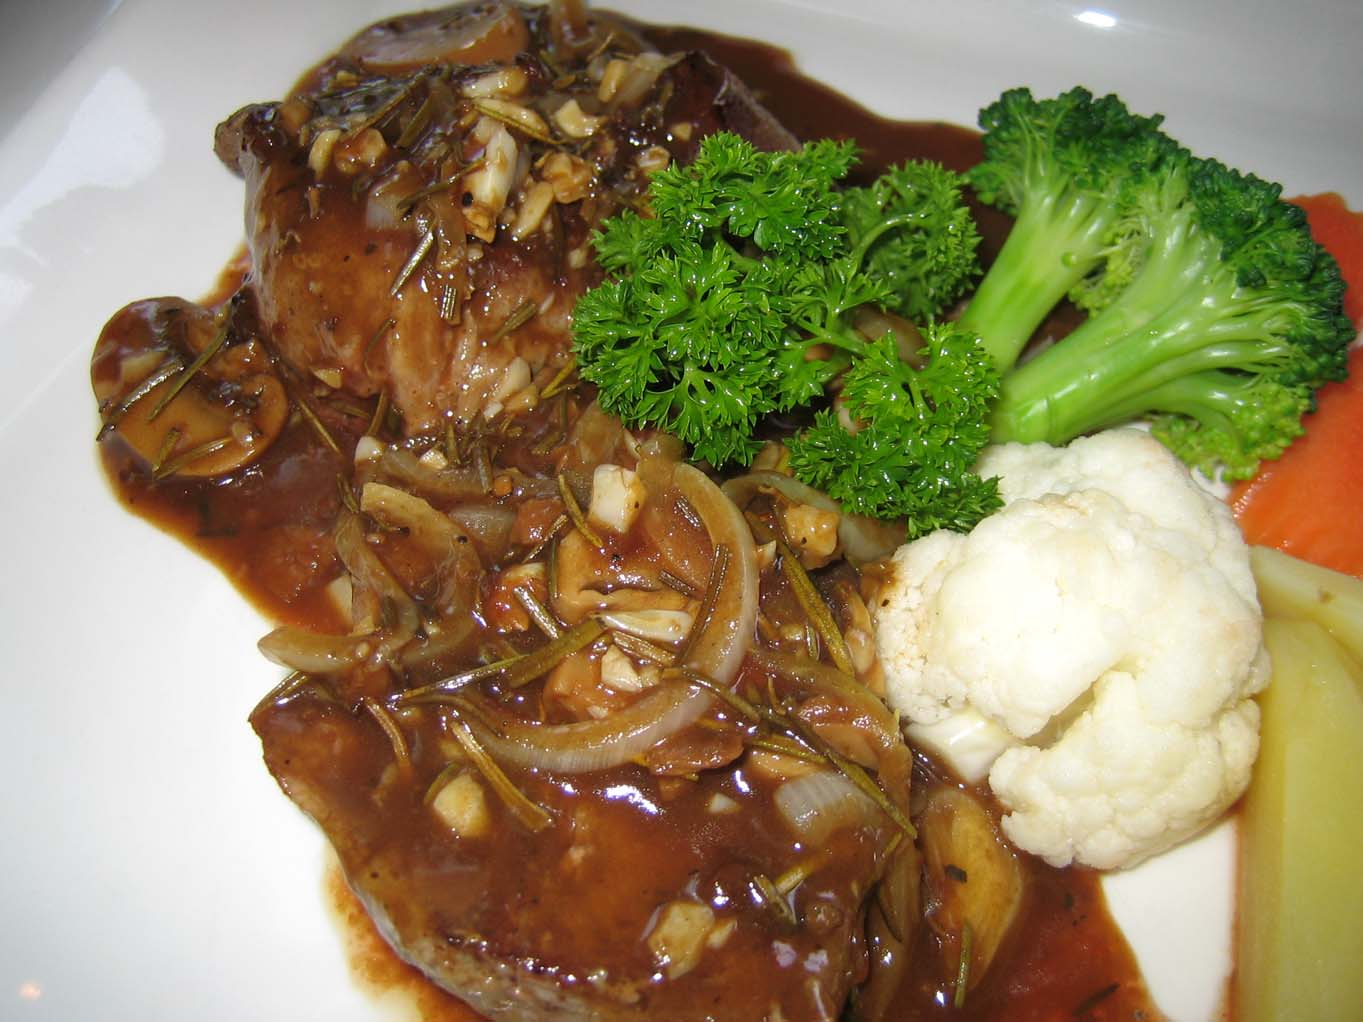 Mizi tenderloin steak